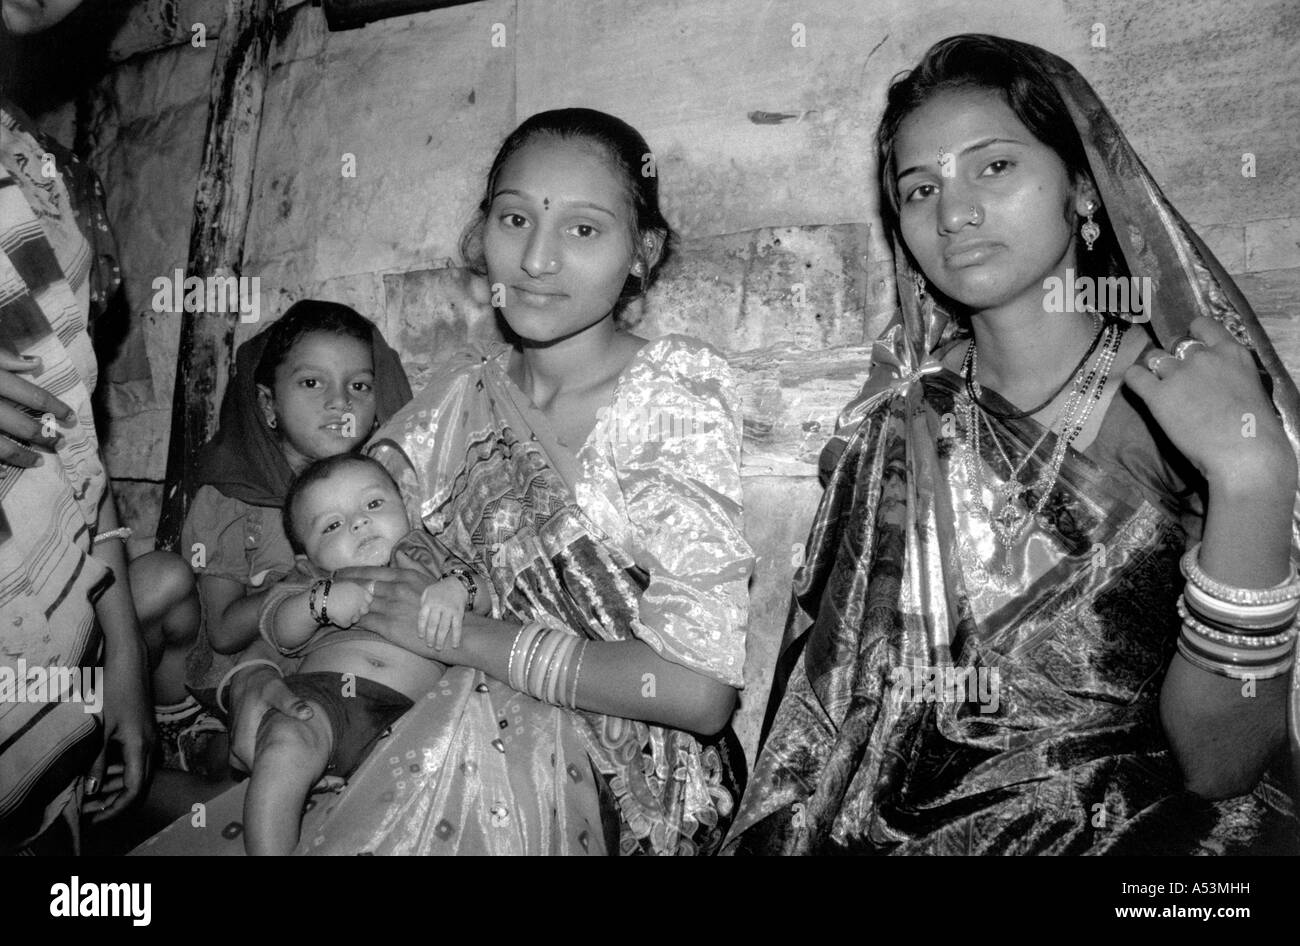 Painet ha1416 241 black and white women general ahmedabad gujarat india country developing nation economically developed - Stock Image